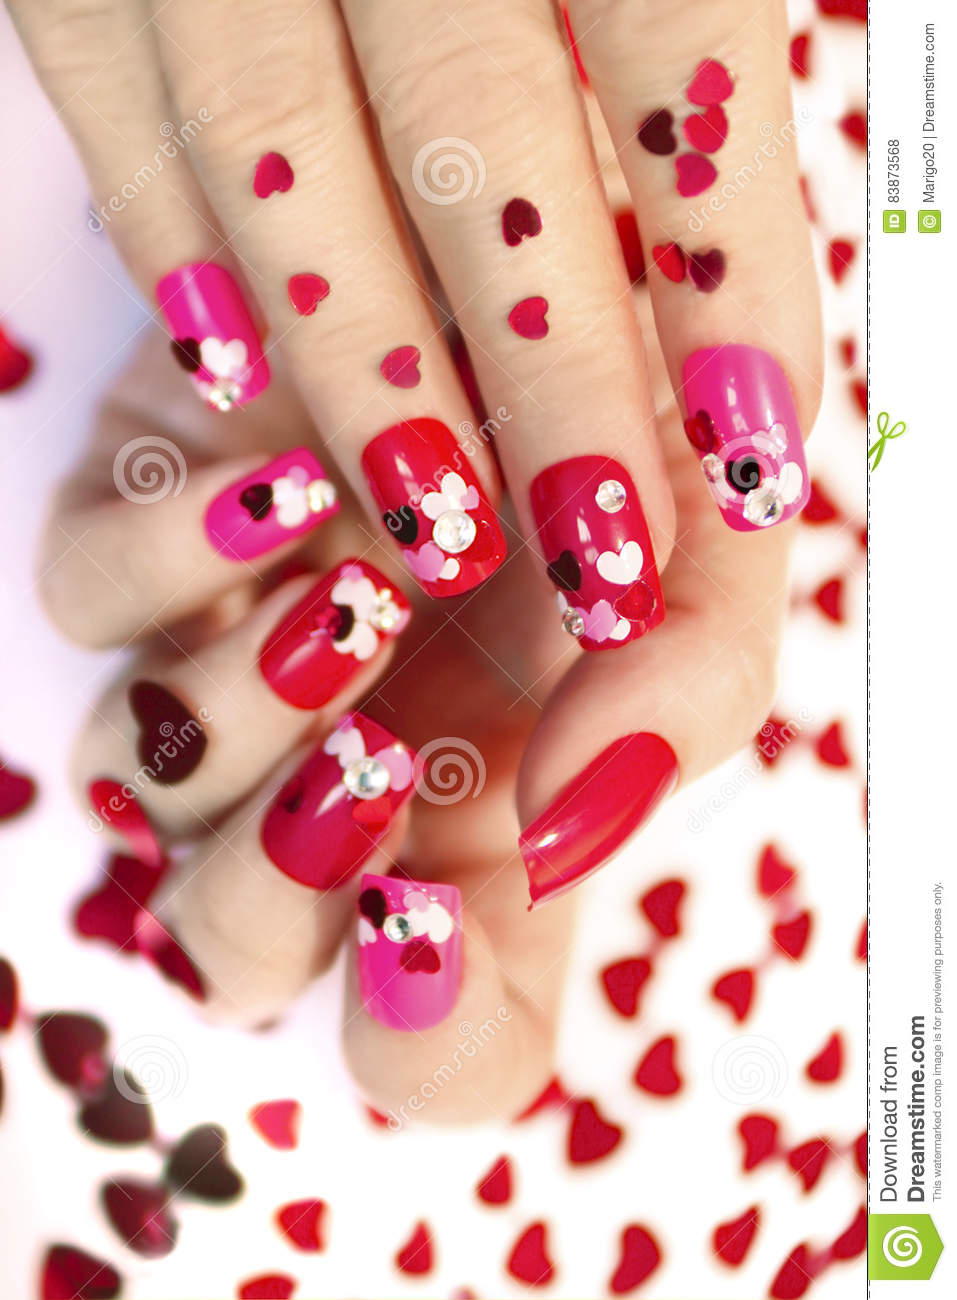 Nail designs with hearts.